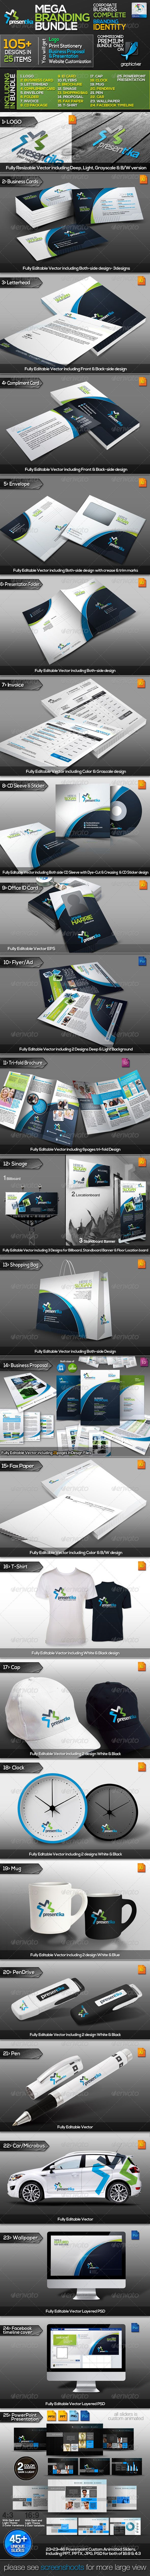 Presentica: Business Identity Mega Branding Bundle - Stationery Print Templates